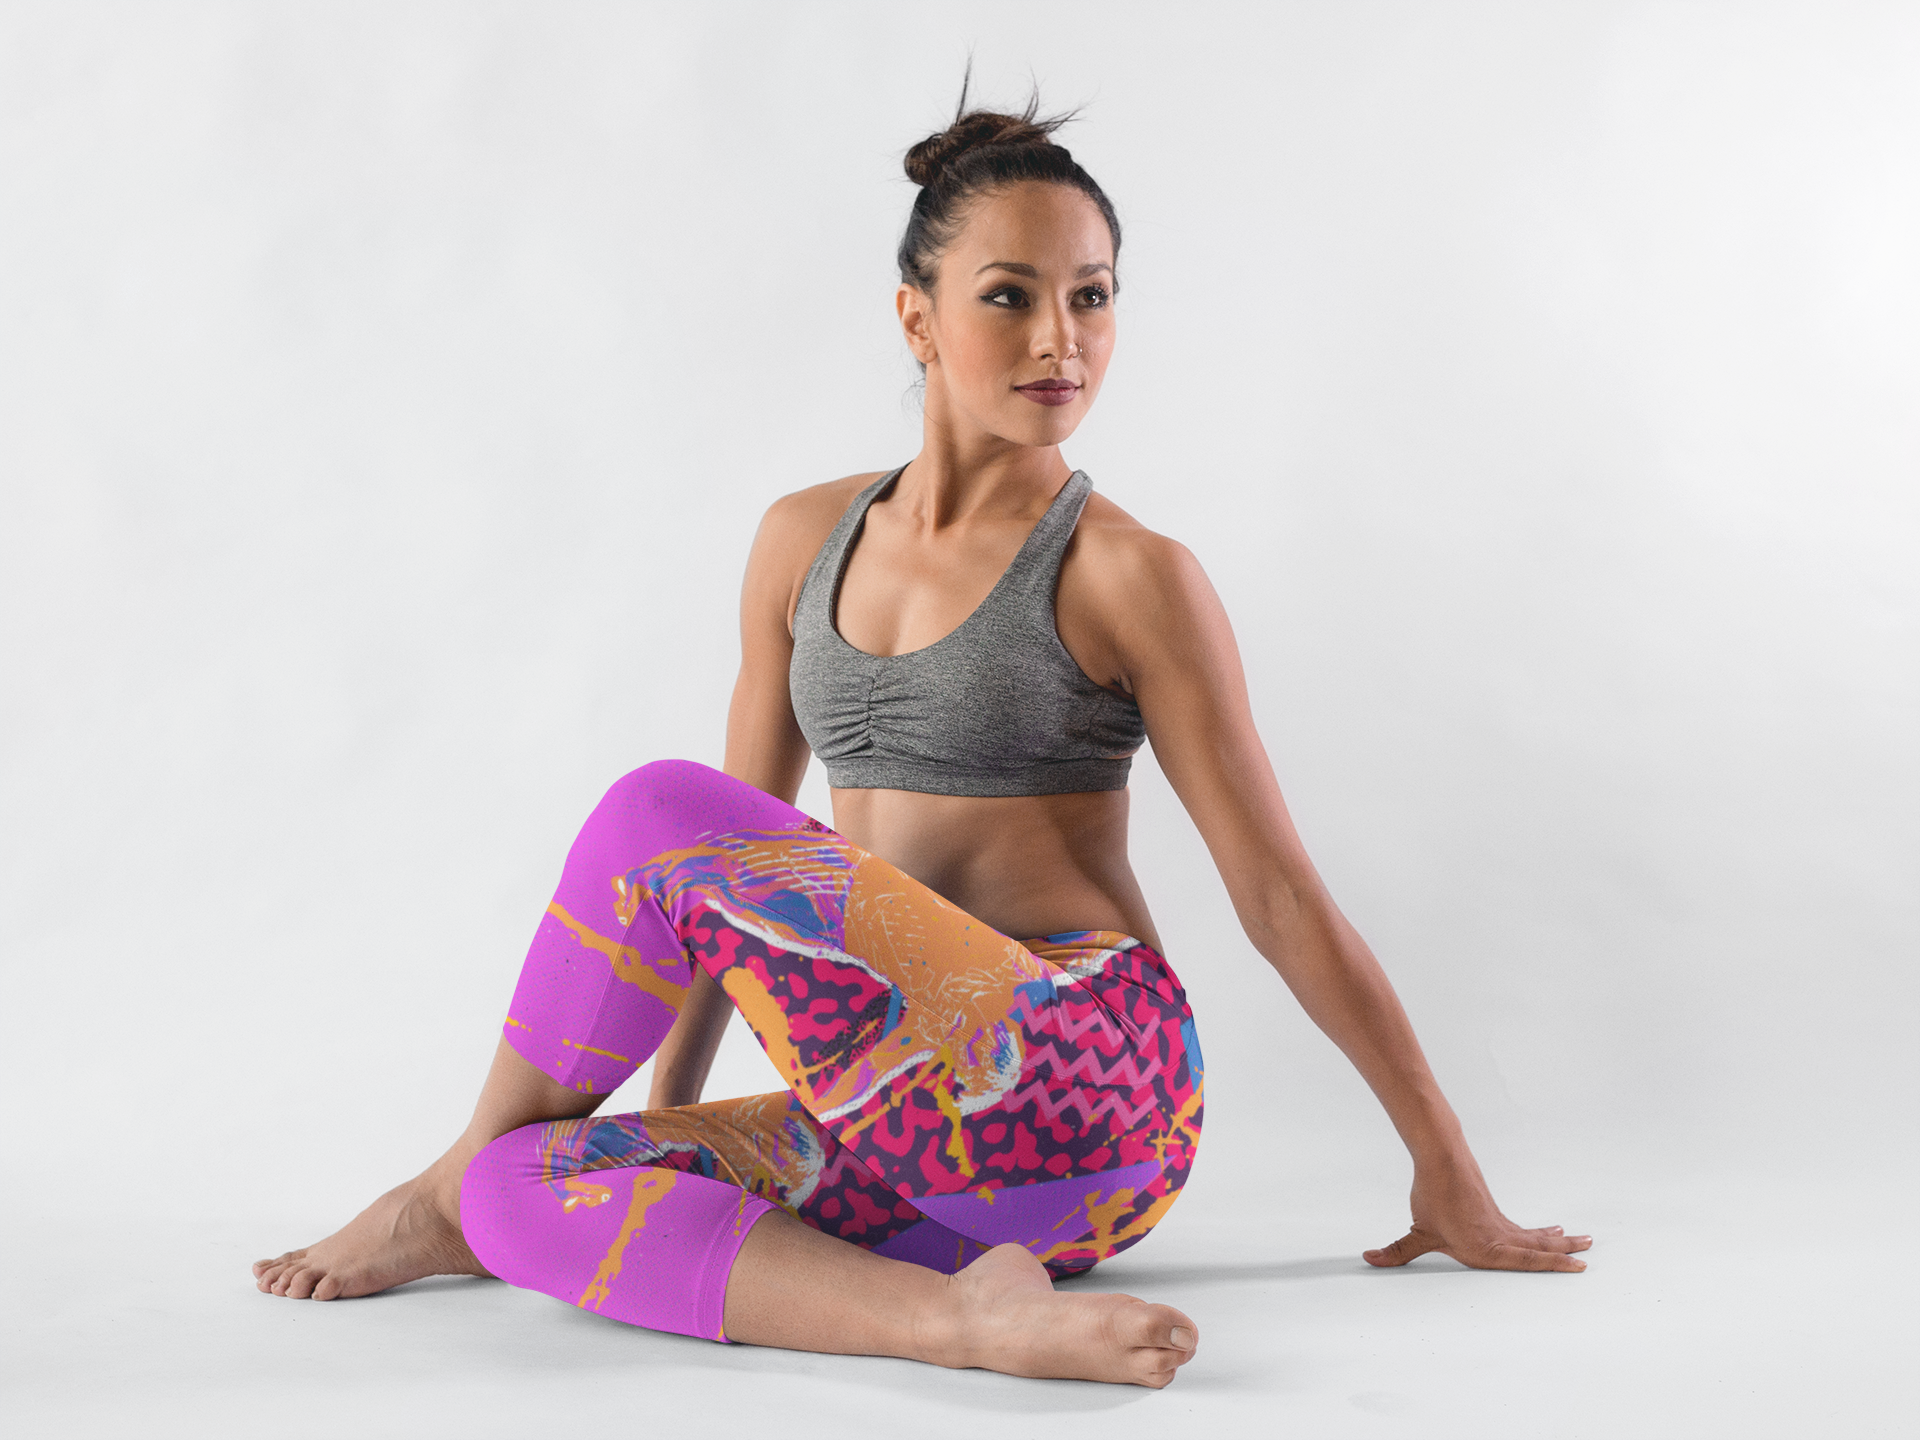 hispanic-girl-wearing-leggings-template-while-in-a-yoga-pose-in-a-white-room-a15402